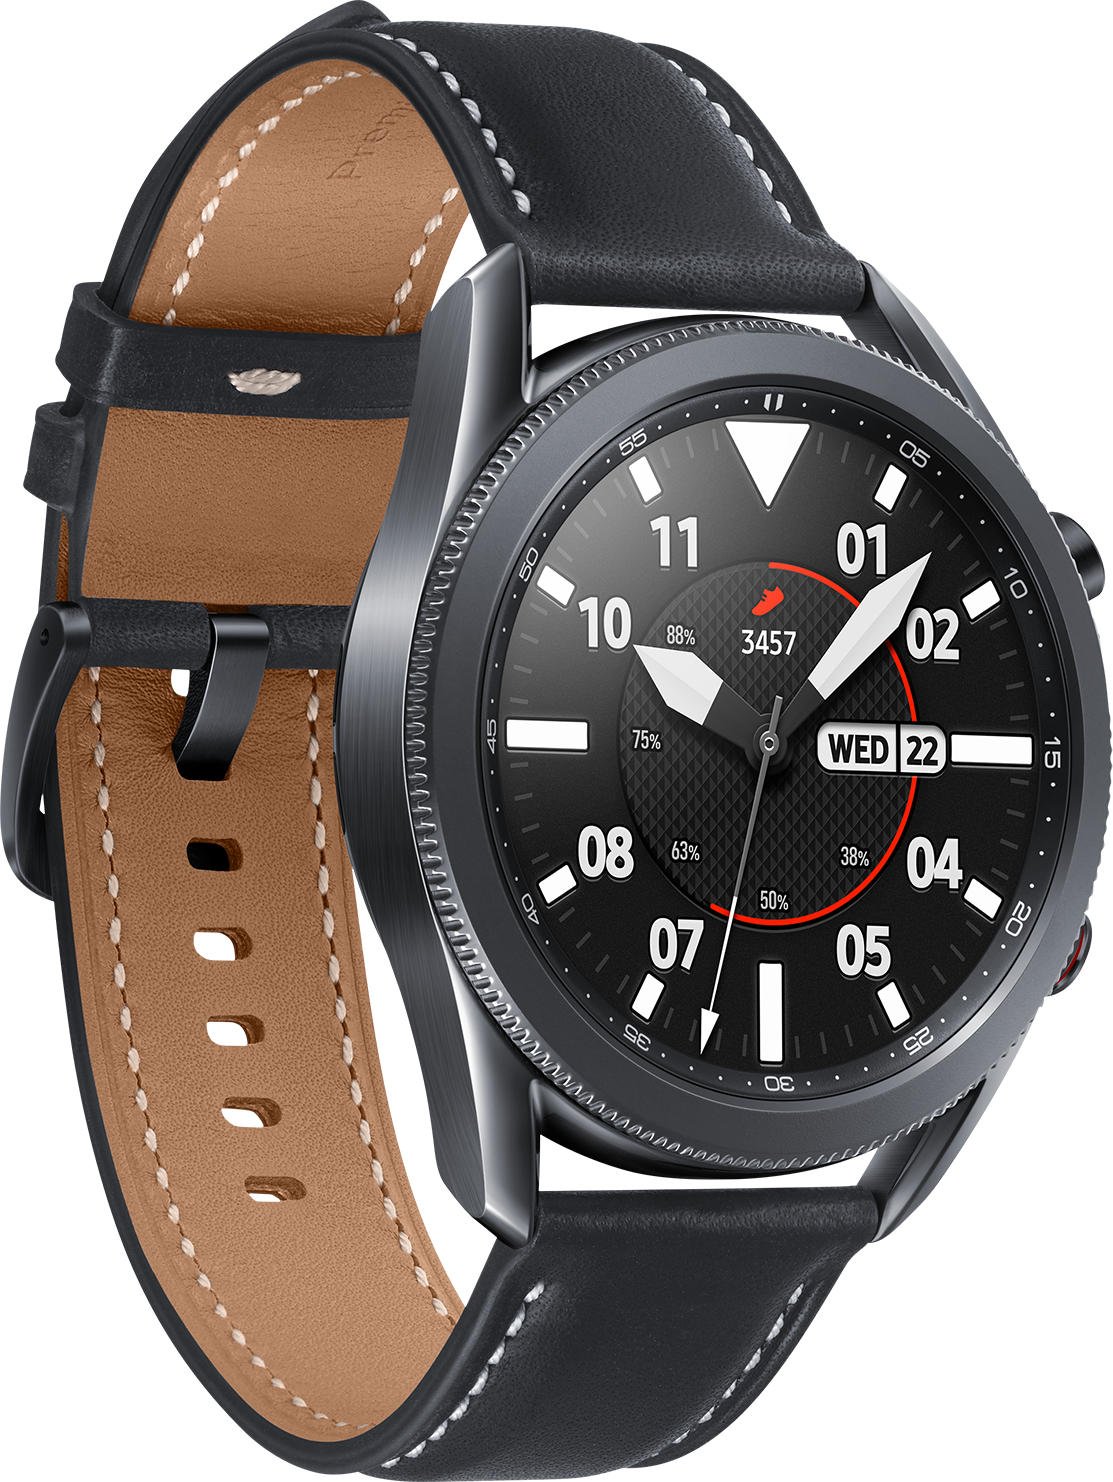 Samsung Galaxy Watch 3 BT Take charge of your day with this sophisticated smart watch that effortlessly tracks your health while keeping you connected.